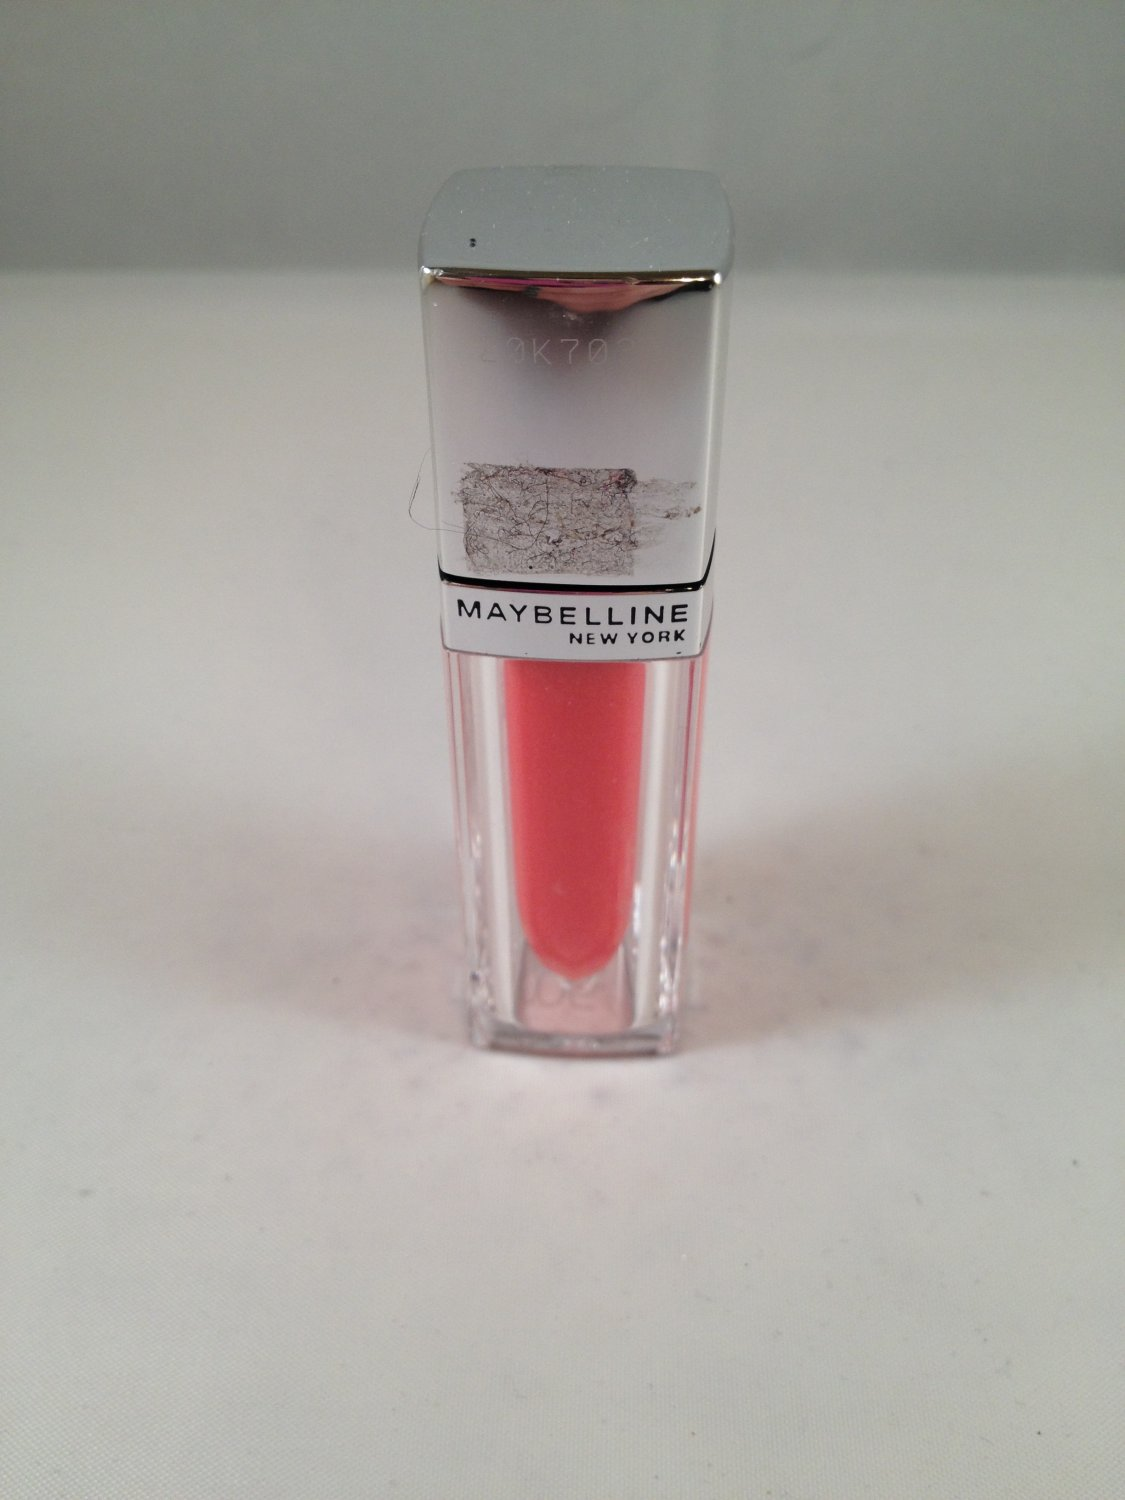 Maybelline ColorSensational Color Elixir Lip Color gloss lipgloss #005 Breathtaking Apricot